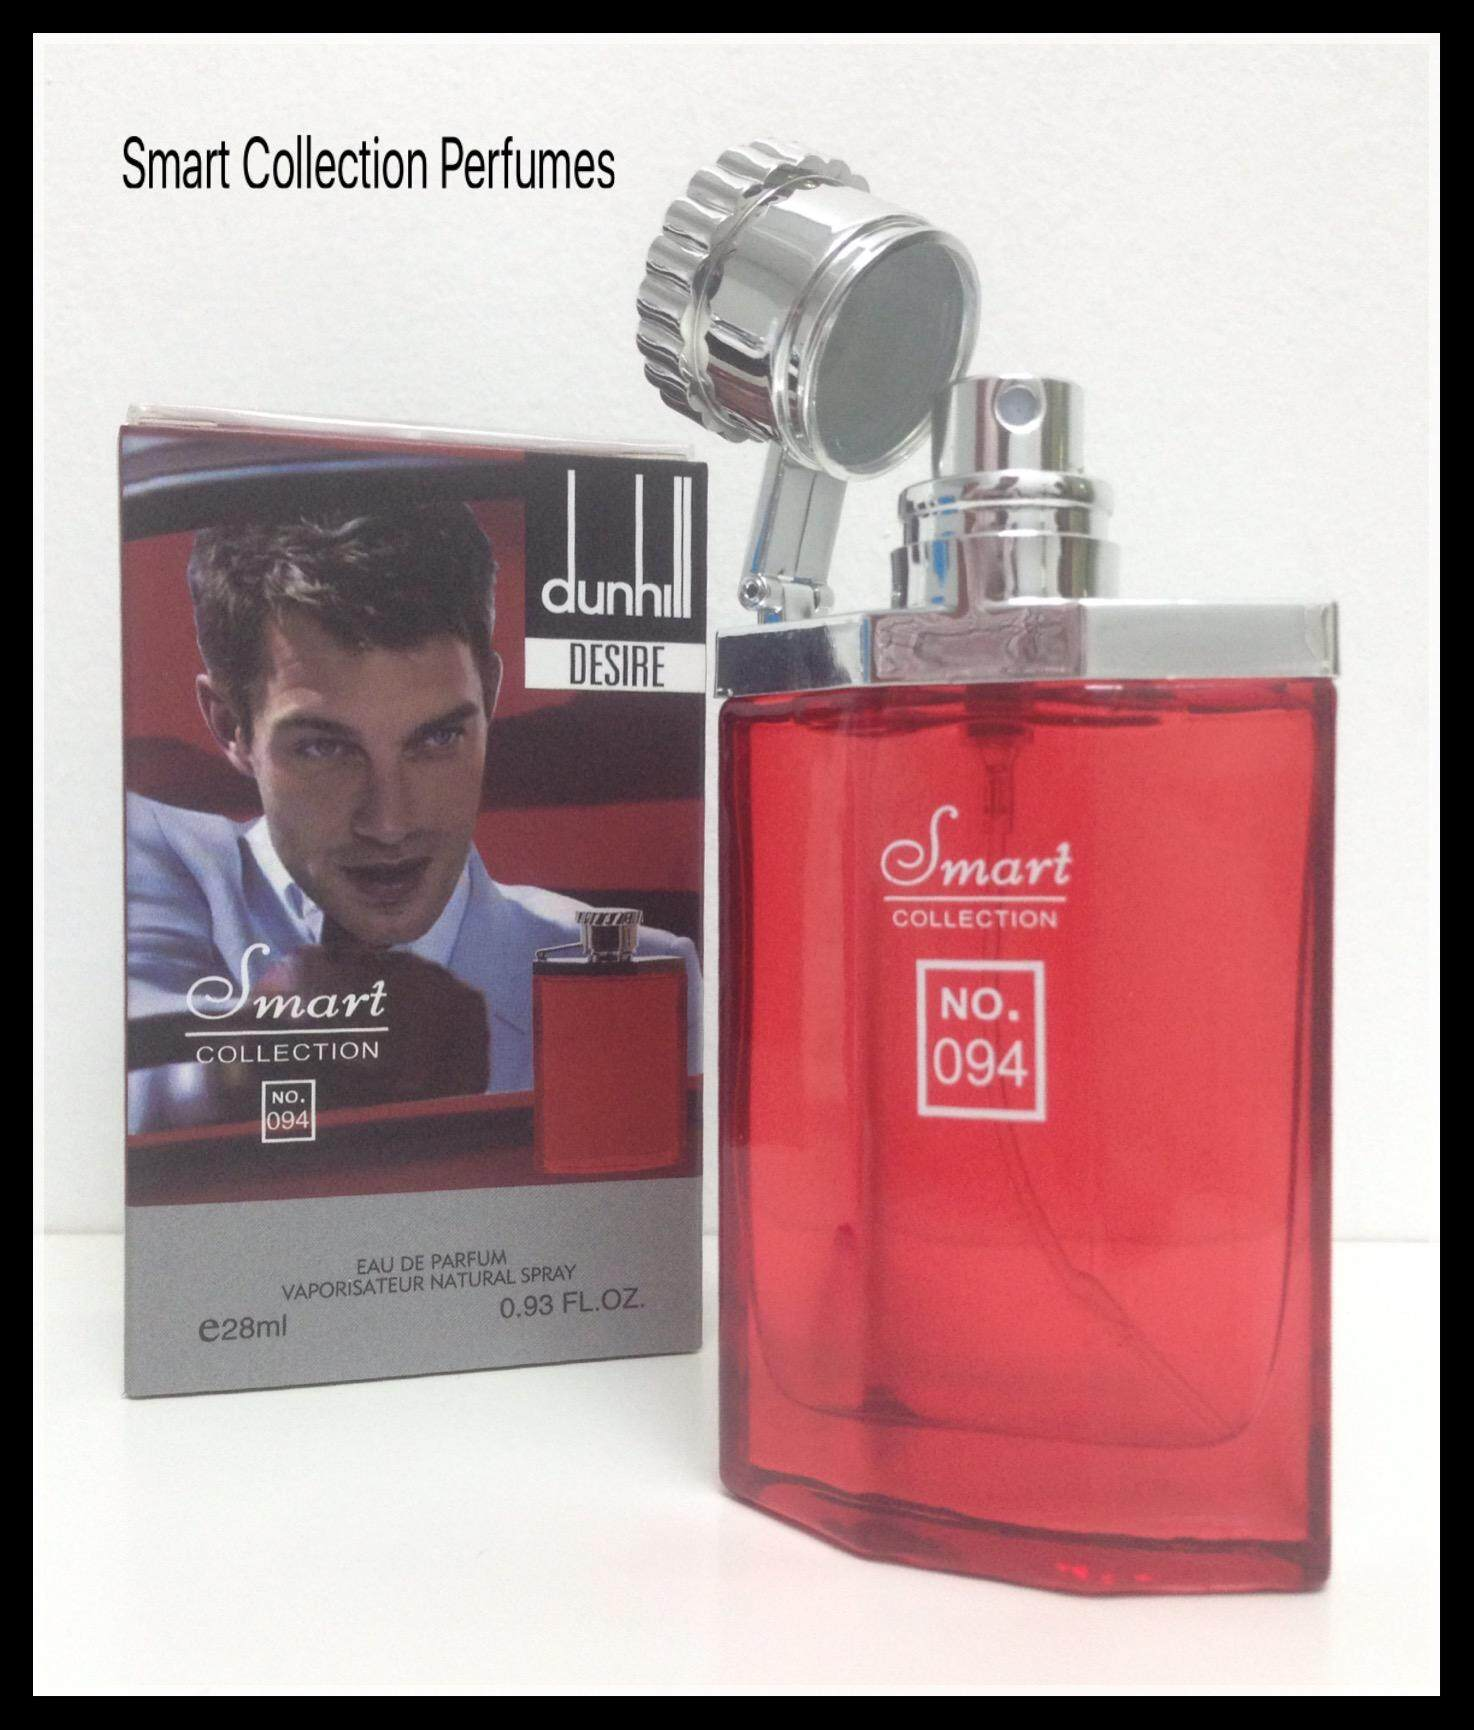 SMART COLLECTION PERFUMES MINIATURE